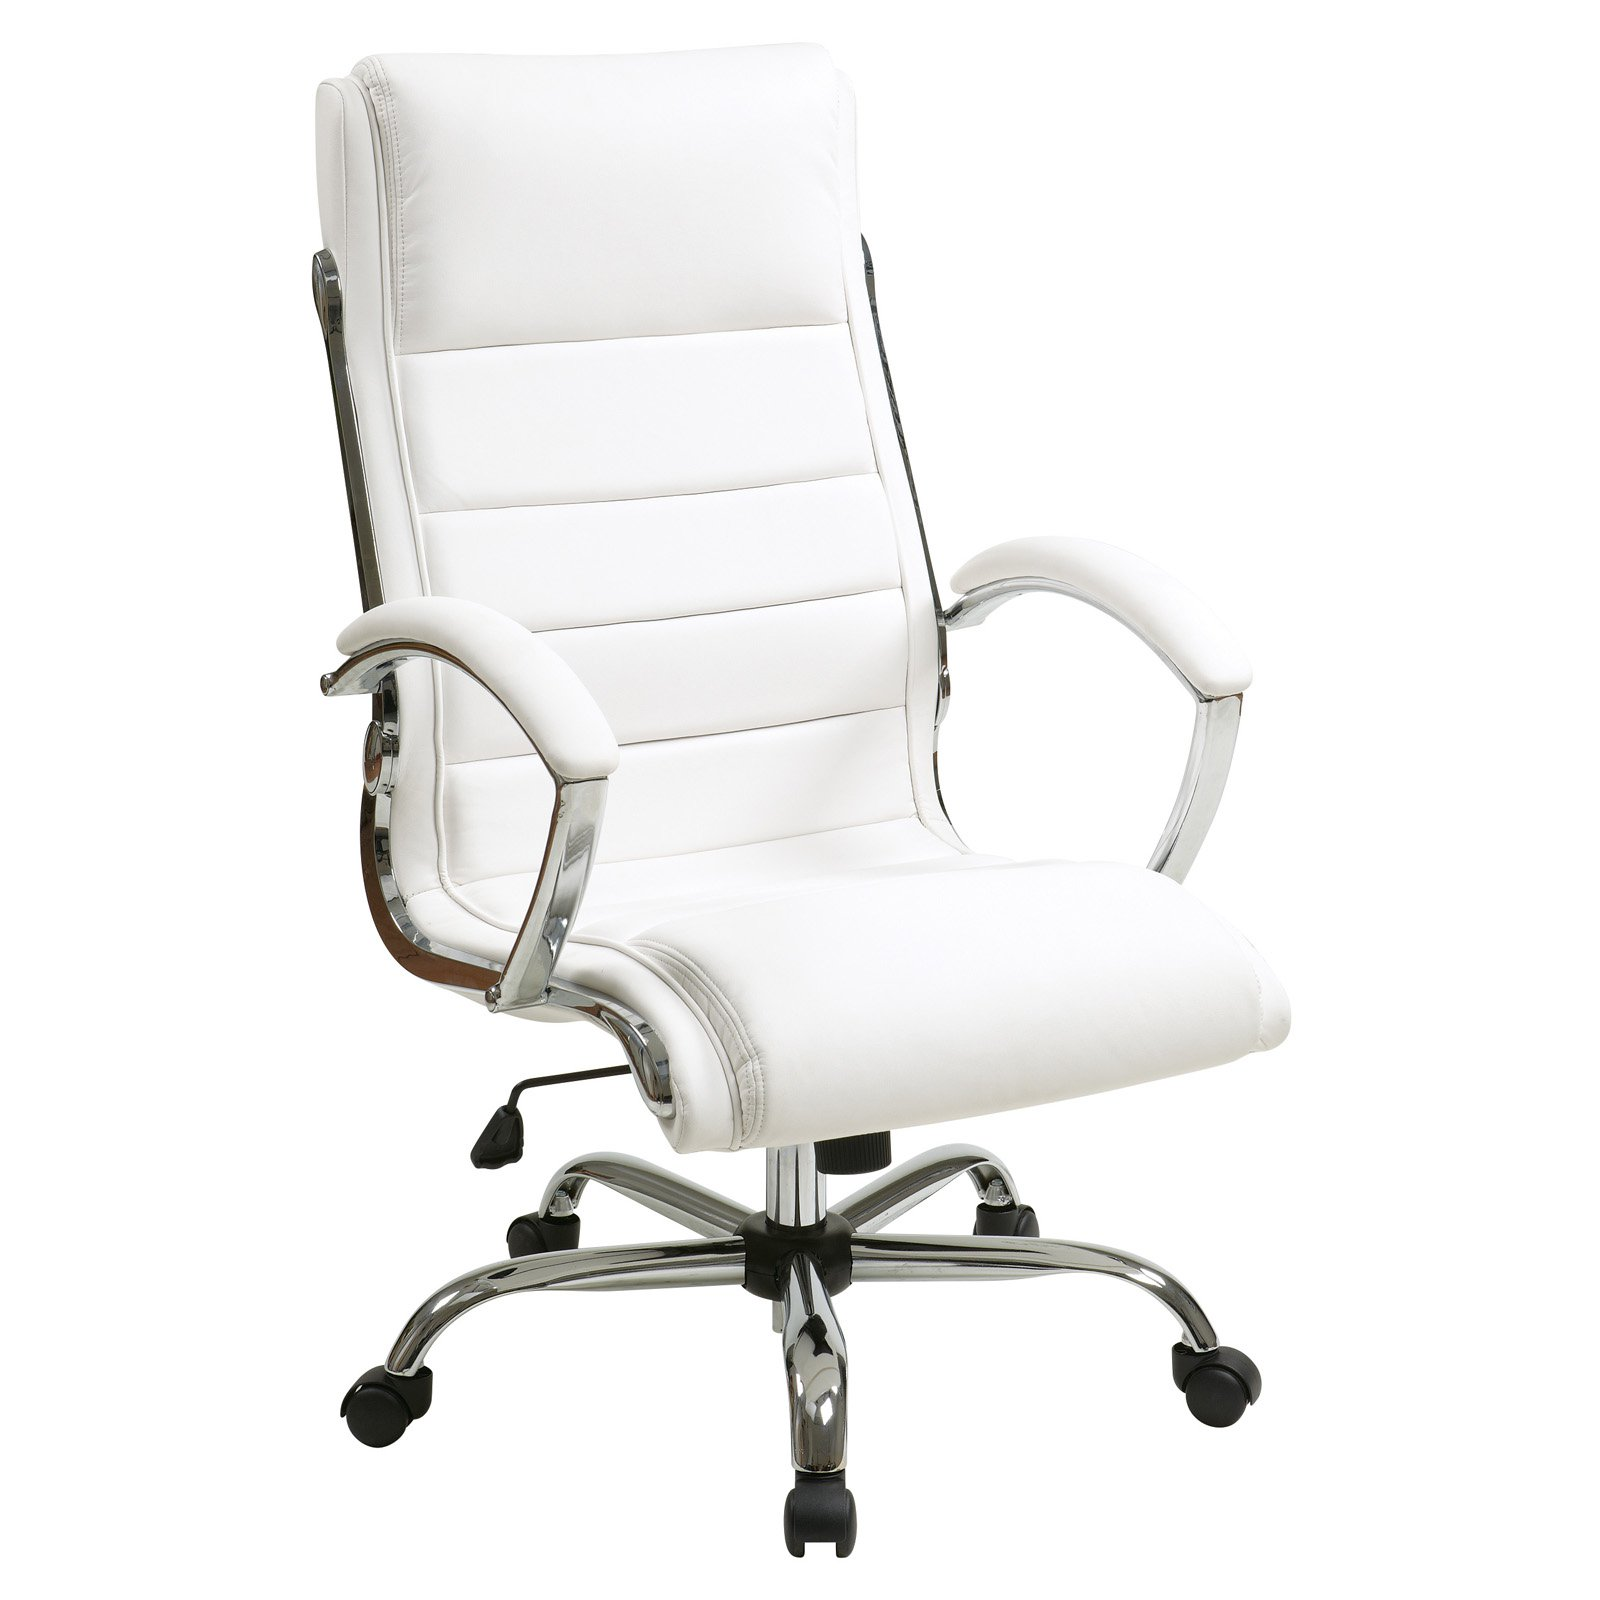 Executive Chair with Thick Padded Faux Leather Seat and Back, Built-In Lumbar Support, Multiple Colors